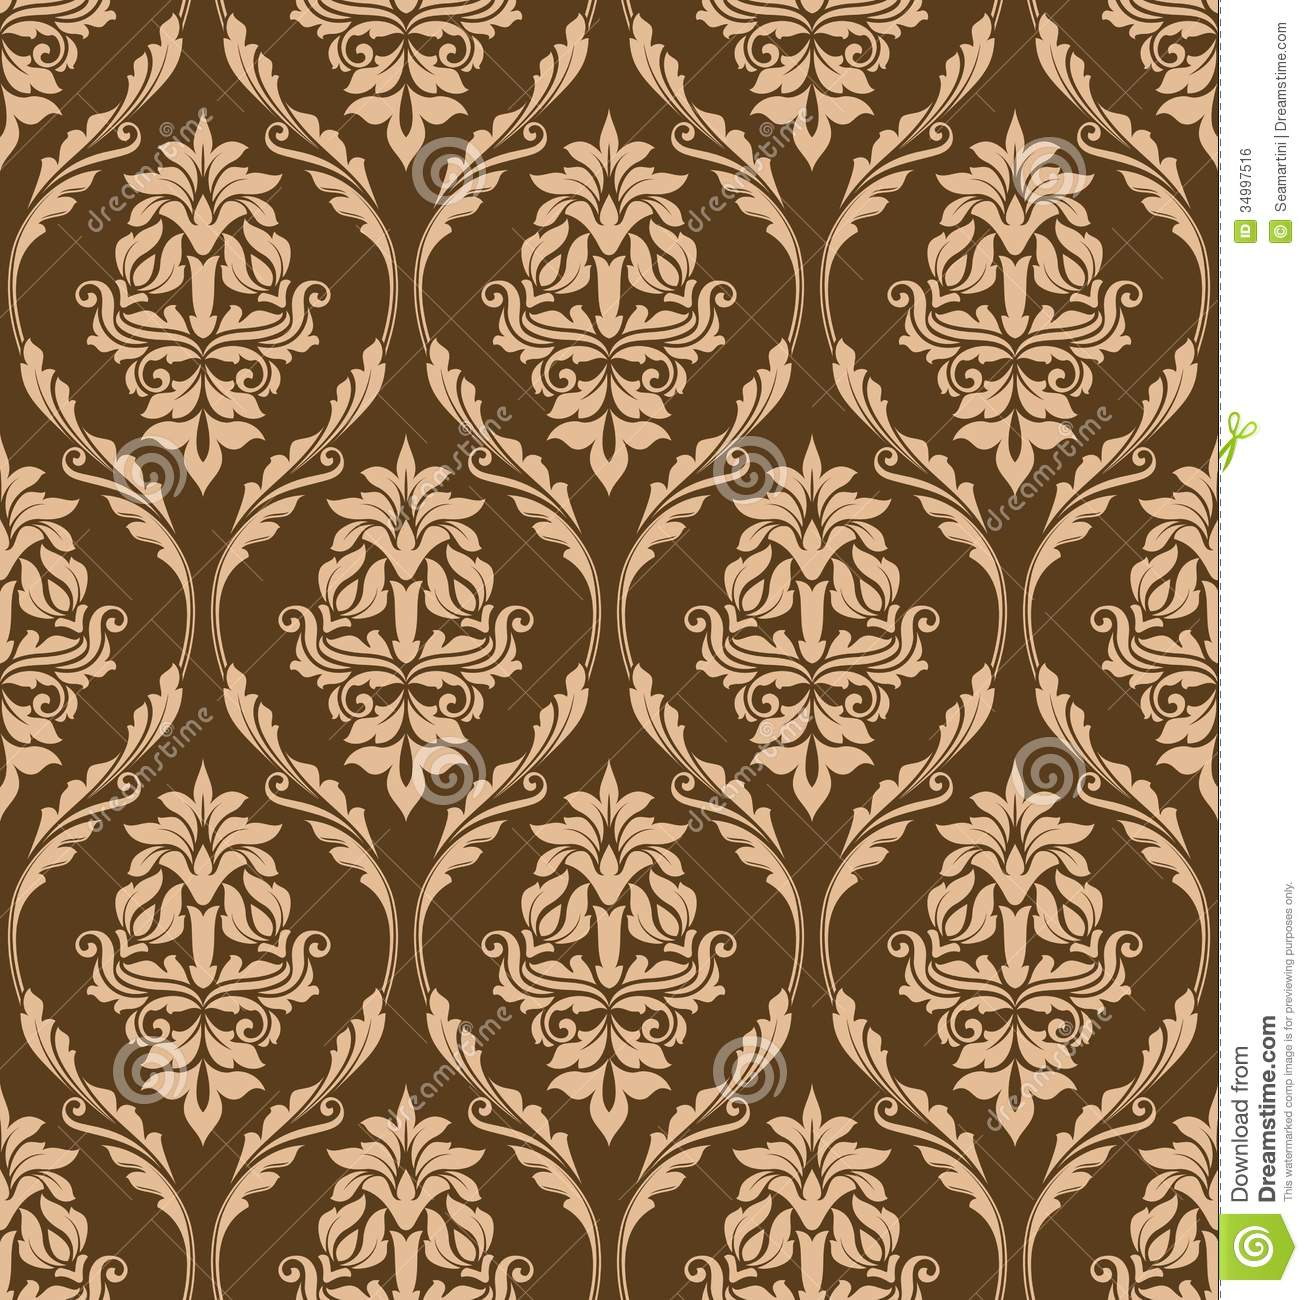 Brown Floral Seamless Pattern Royalty Free Stock Image - Image: 34997516